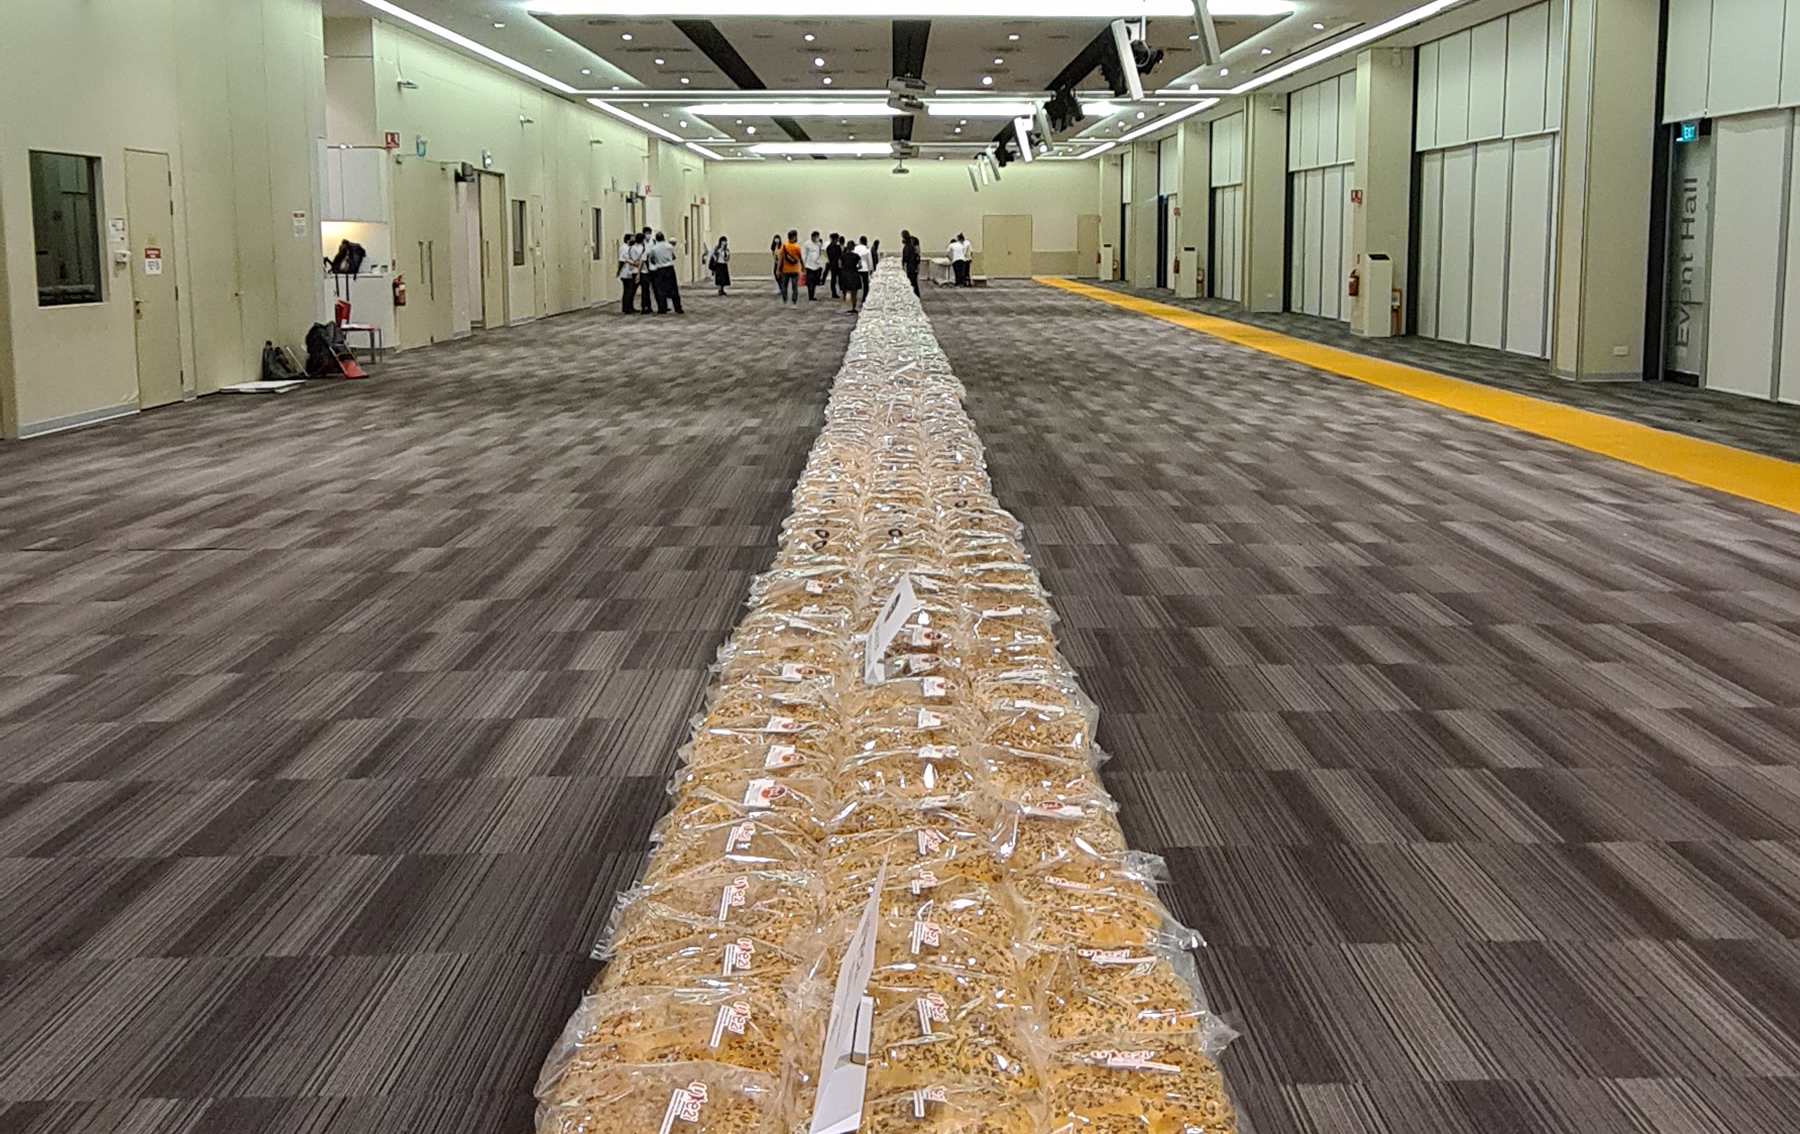 70m-long bread chain